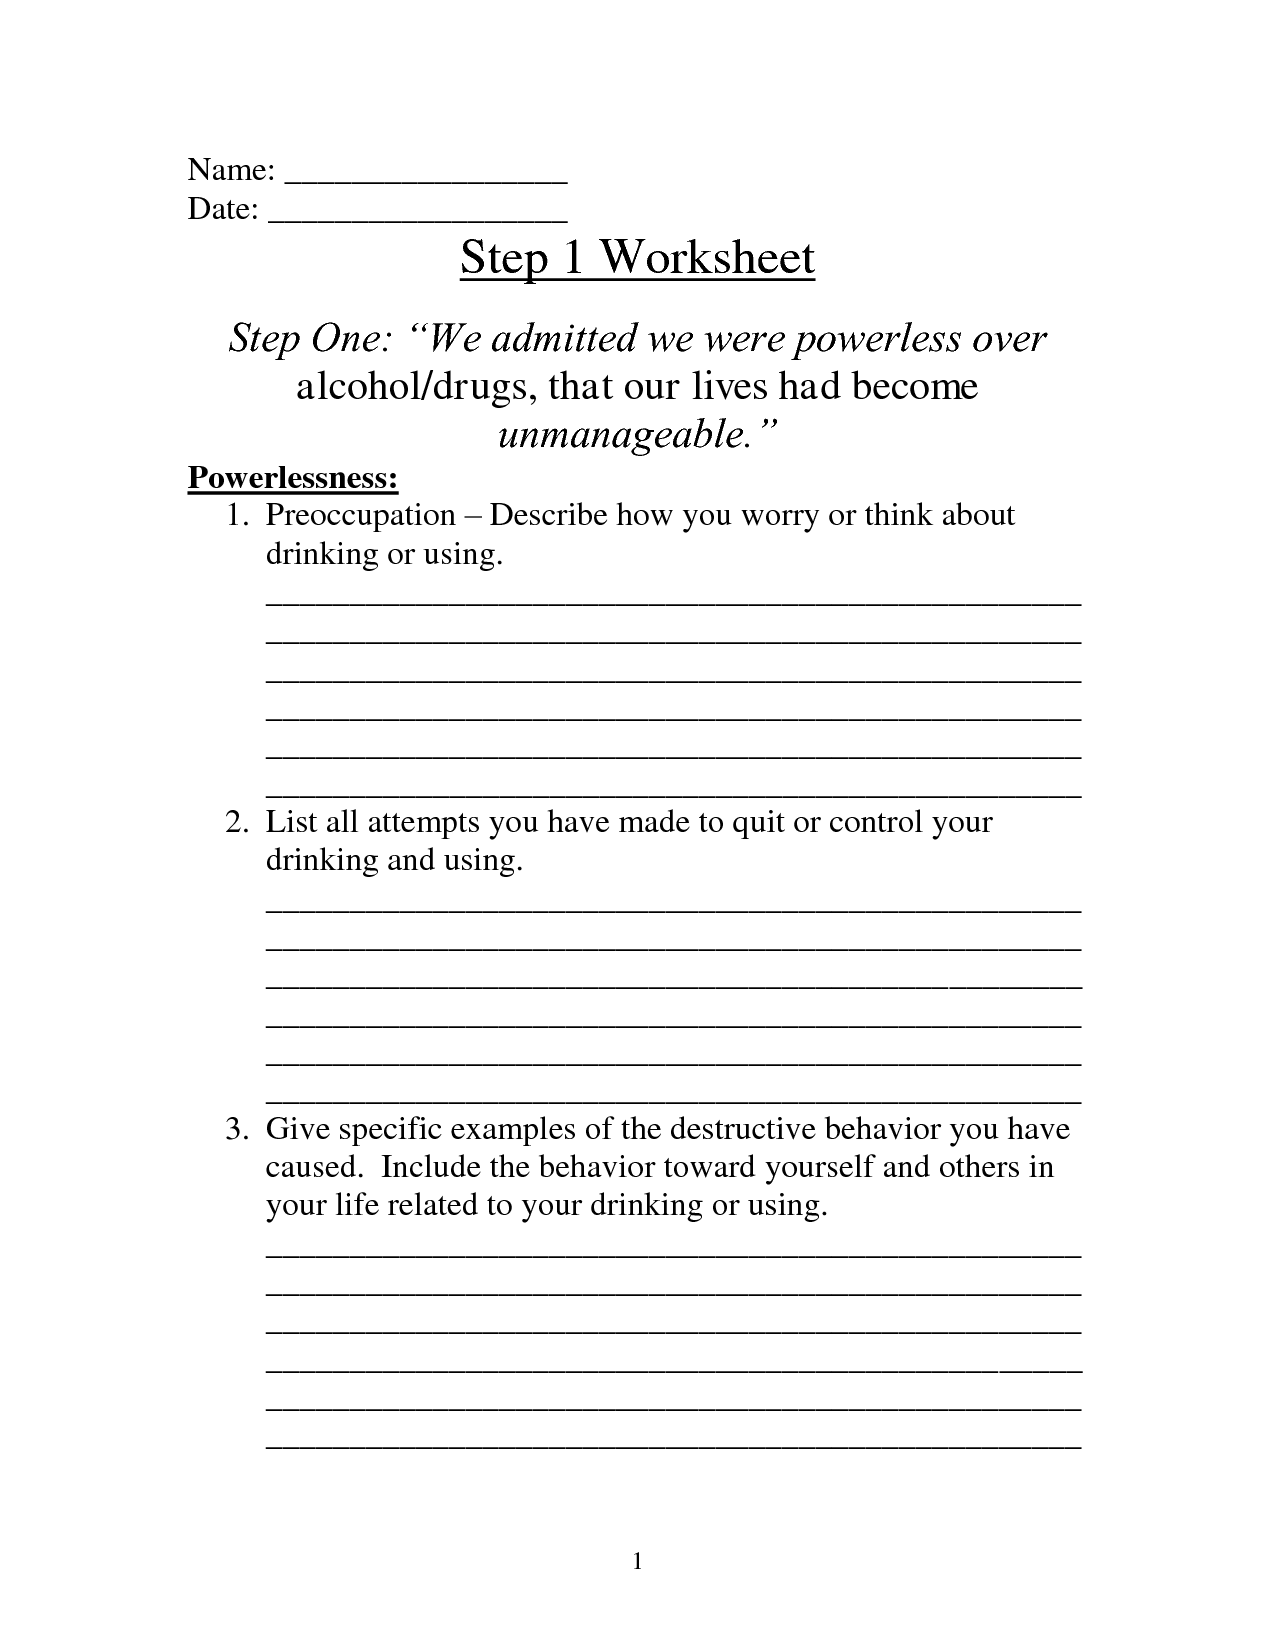 Na Worksheet Step 9 Amends